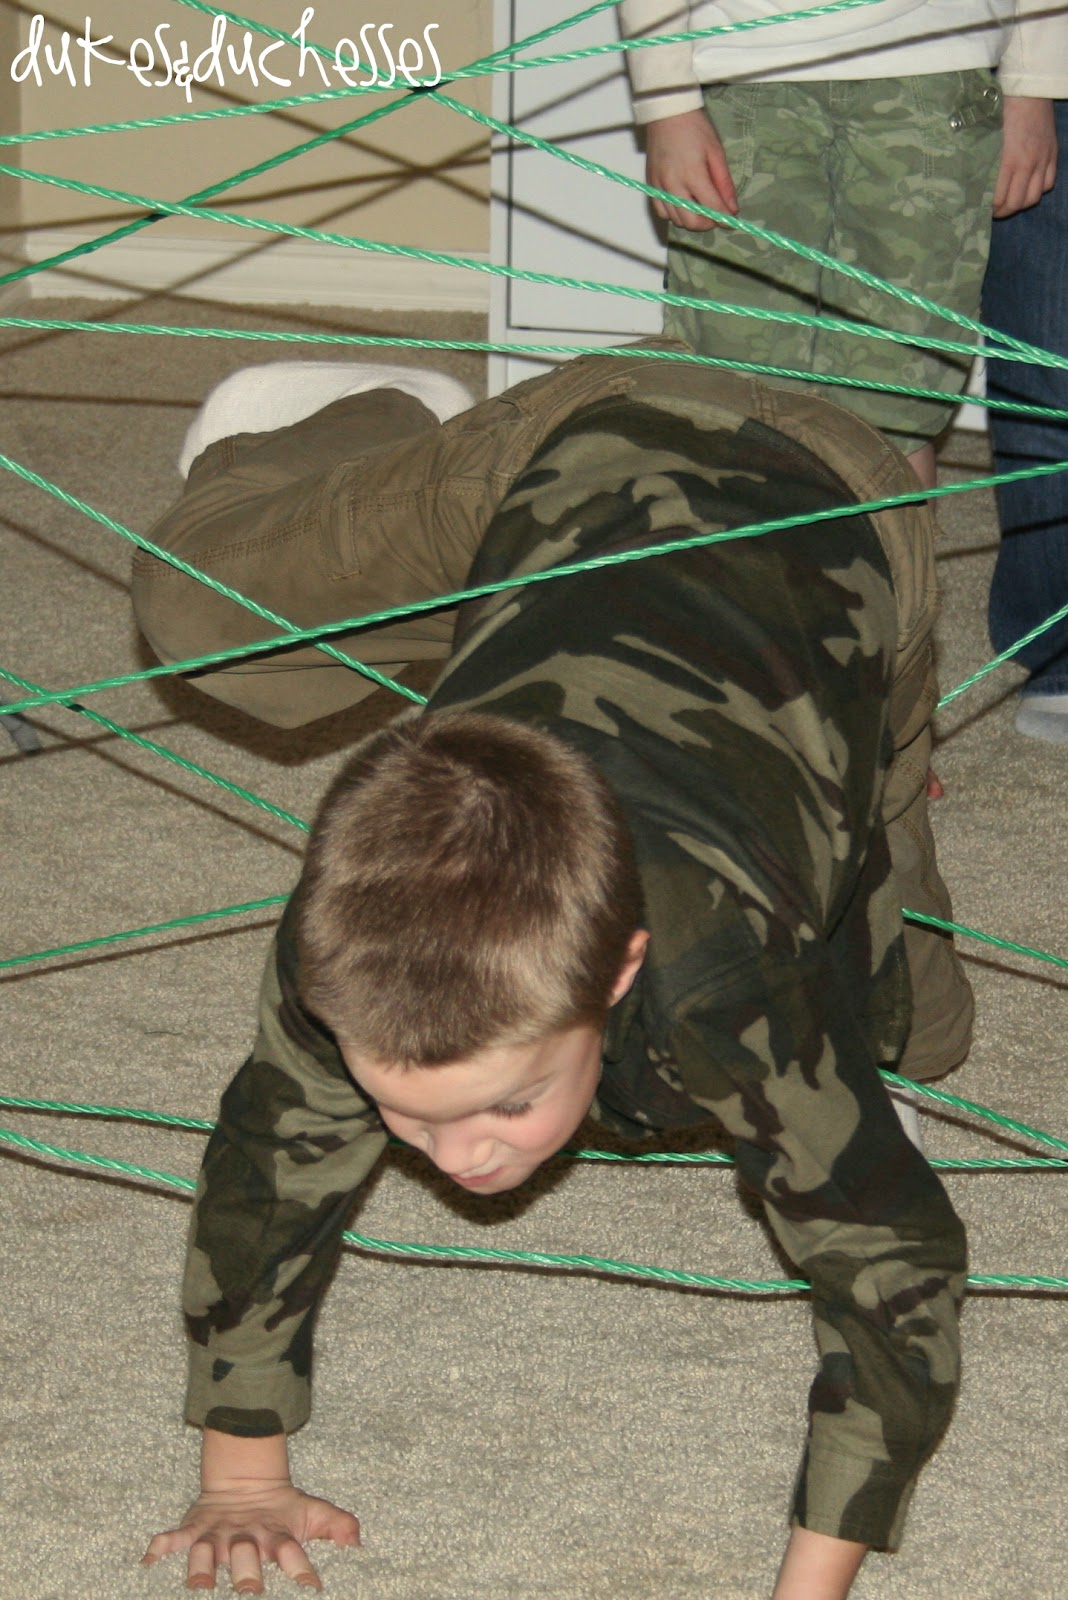 Army / Military Boot Camp Themed Boot Camp Party Idea for Kids